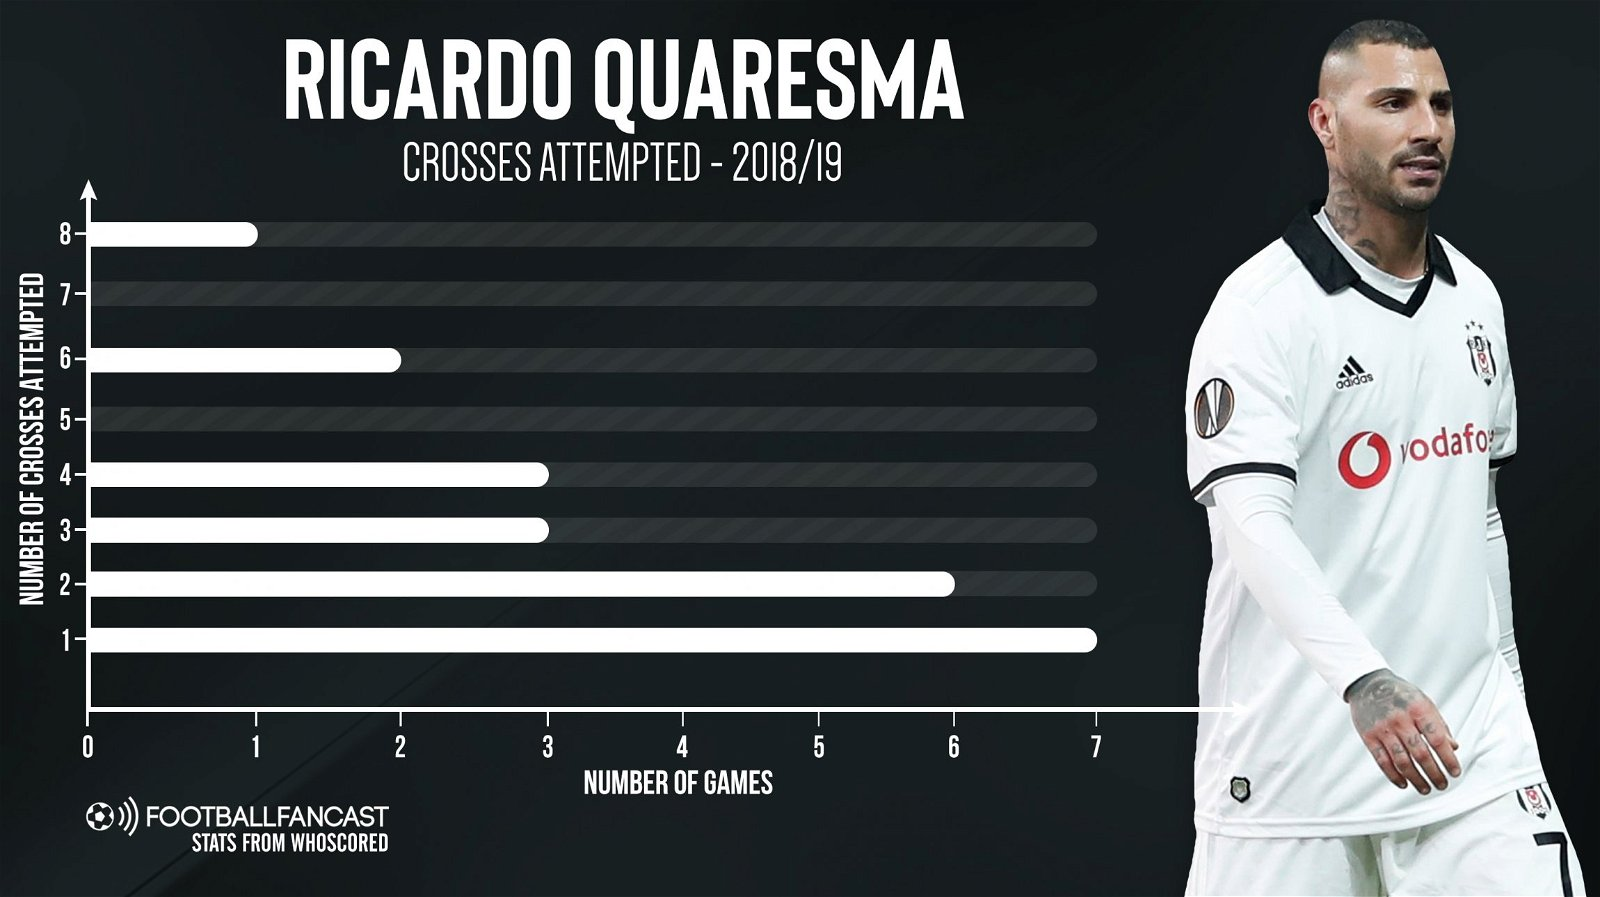 Ricardo Quaresma Crosses attempted 2018 19 - Raul Jimenez could become even better if Wolves land veteran attacker this summer - opinion